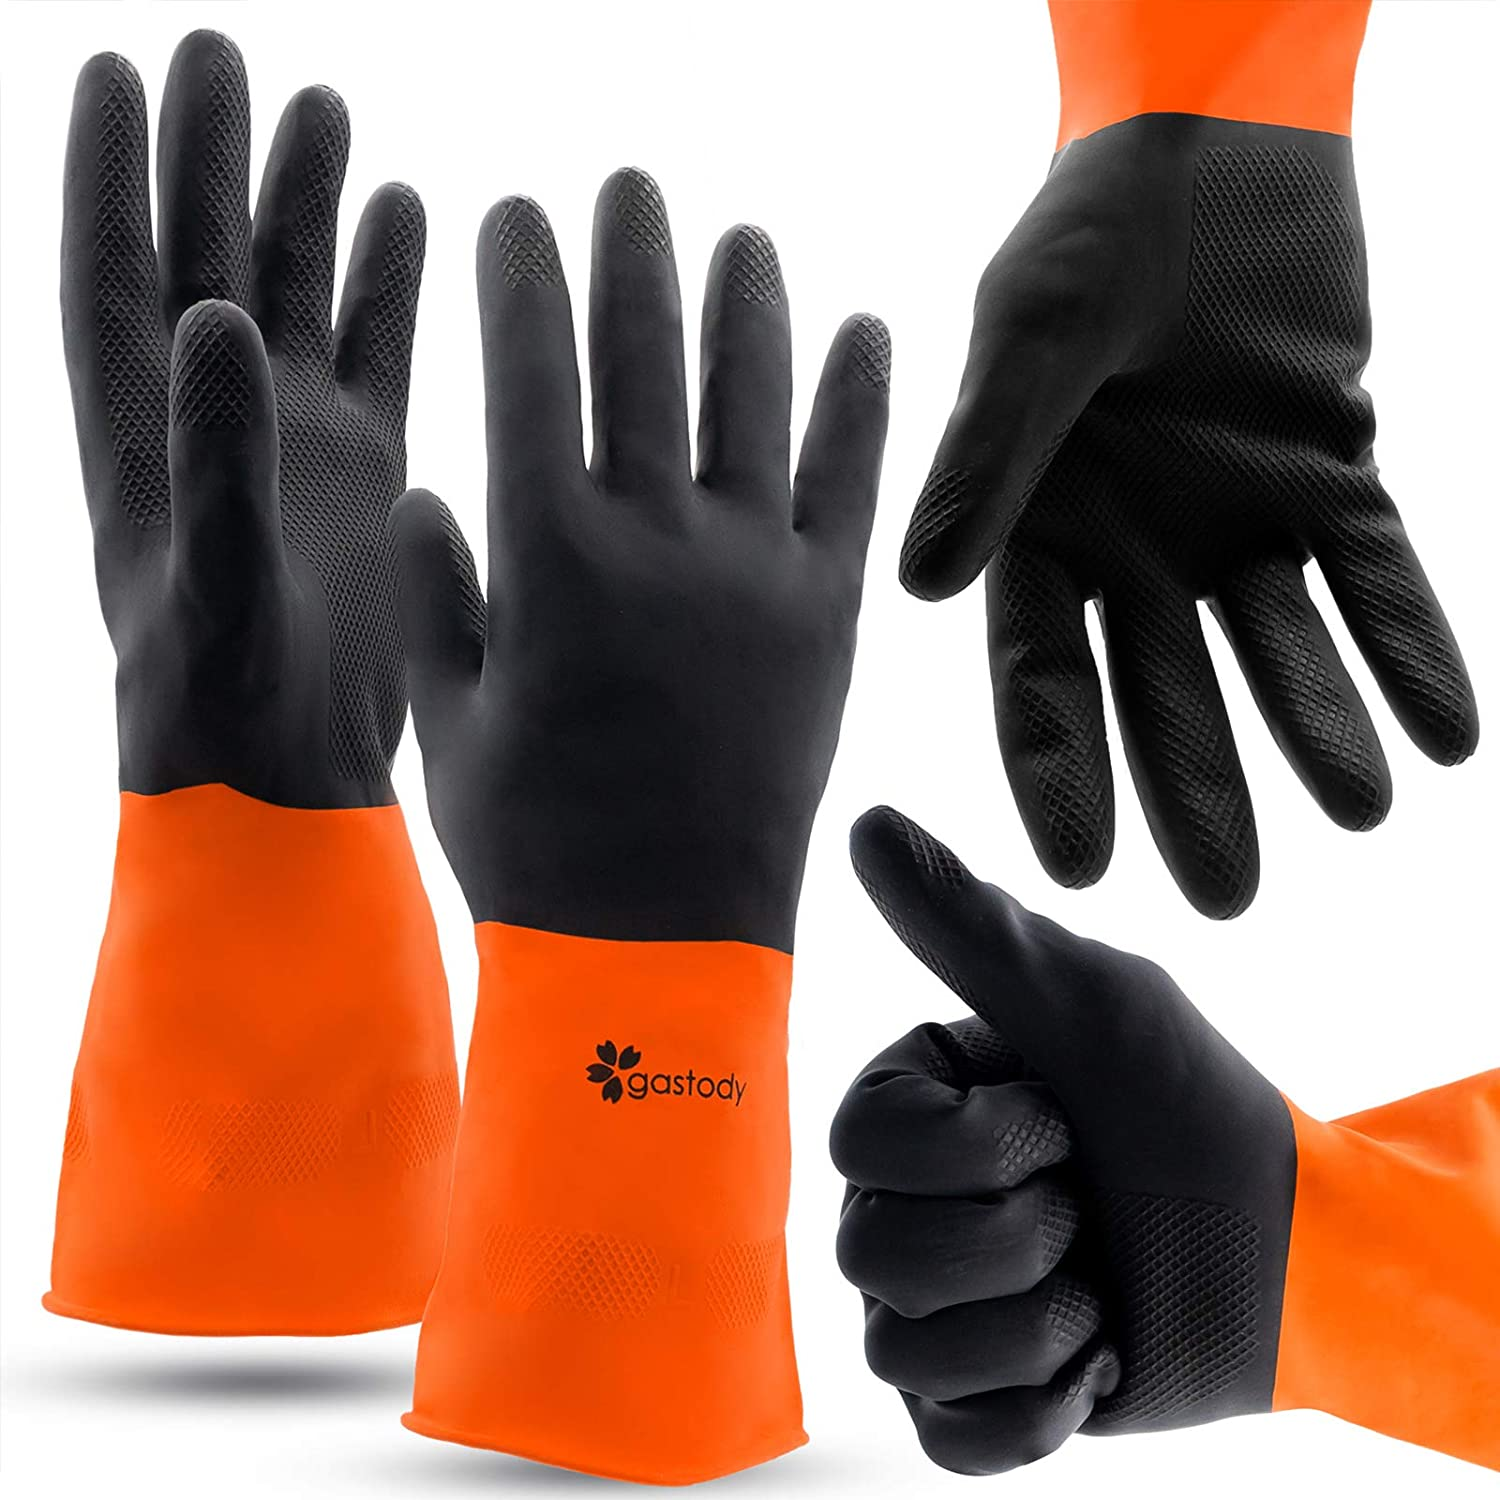 Chemical Gloves Set of 2 Pairs - Size M Gloves with High Protection for Your Hands-Waterproof Latex Gloves Anti-slip Grip For Firm Handling-Industrial Strength Household Chemical Industry Automotive: Clothing